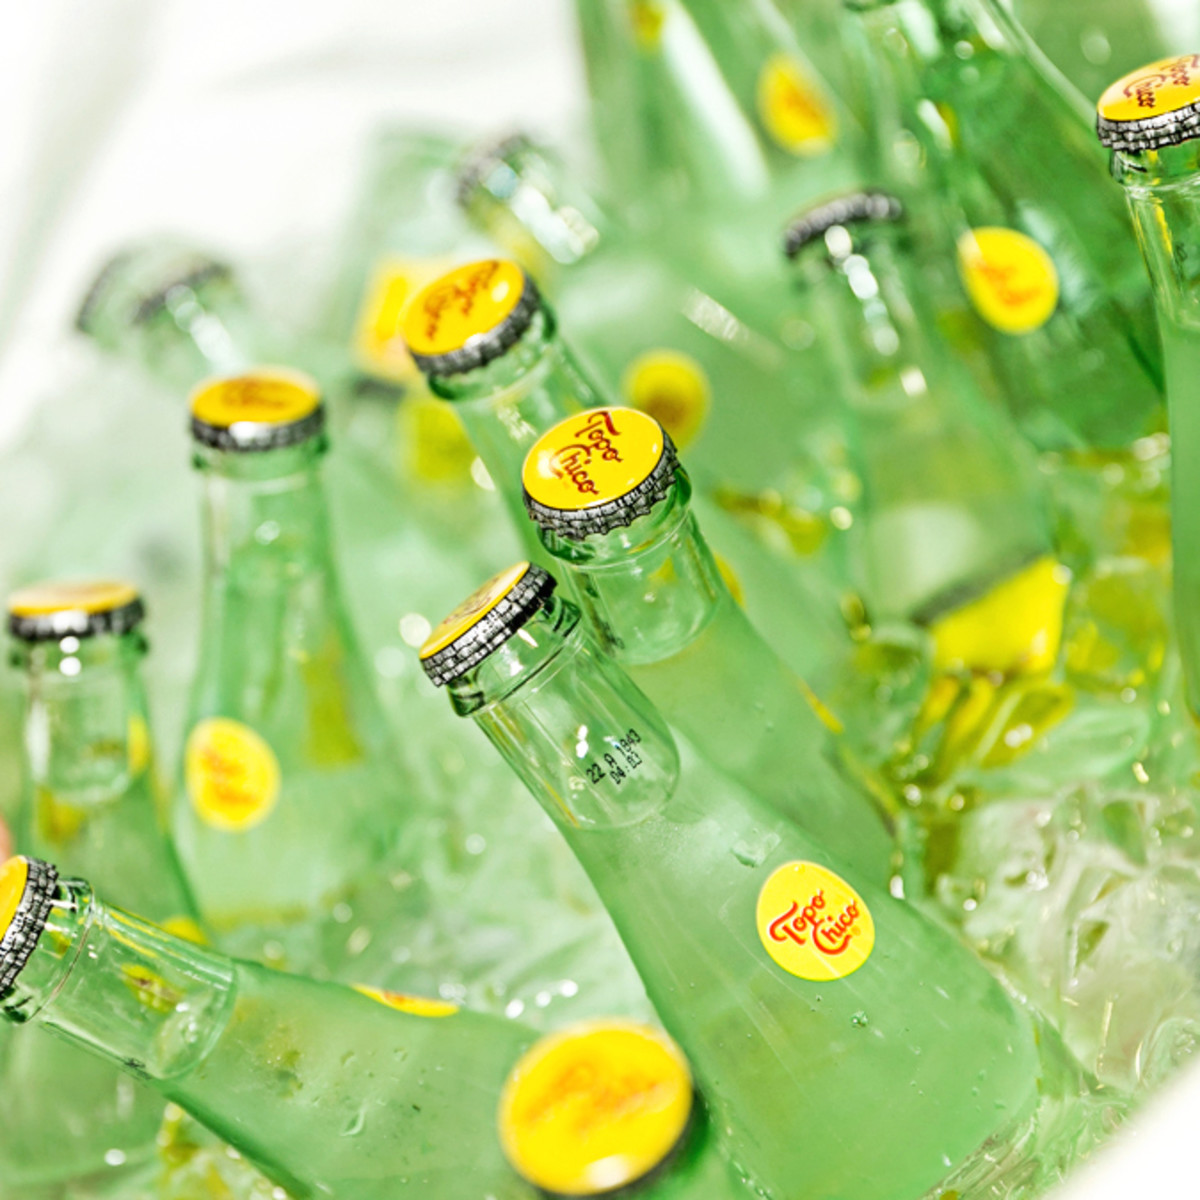 Tastemaker Awards 2018 Topo Chico bottles hydration station